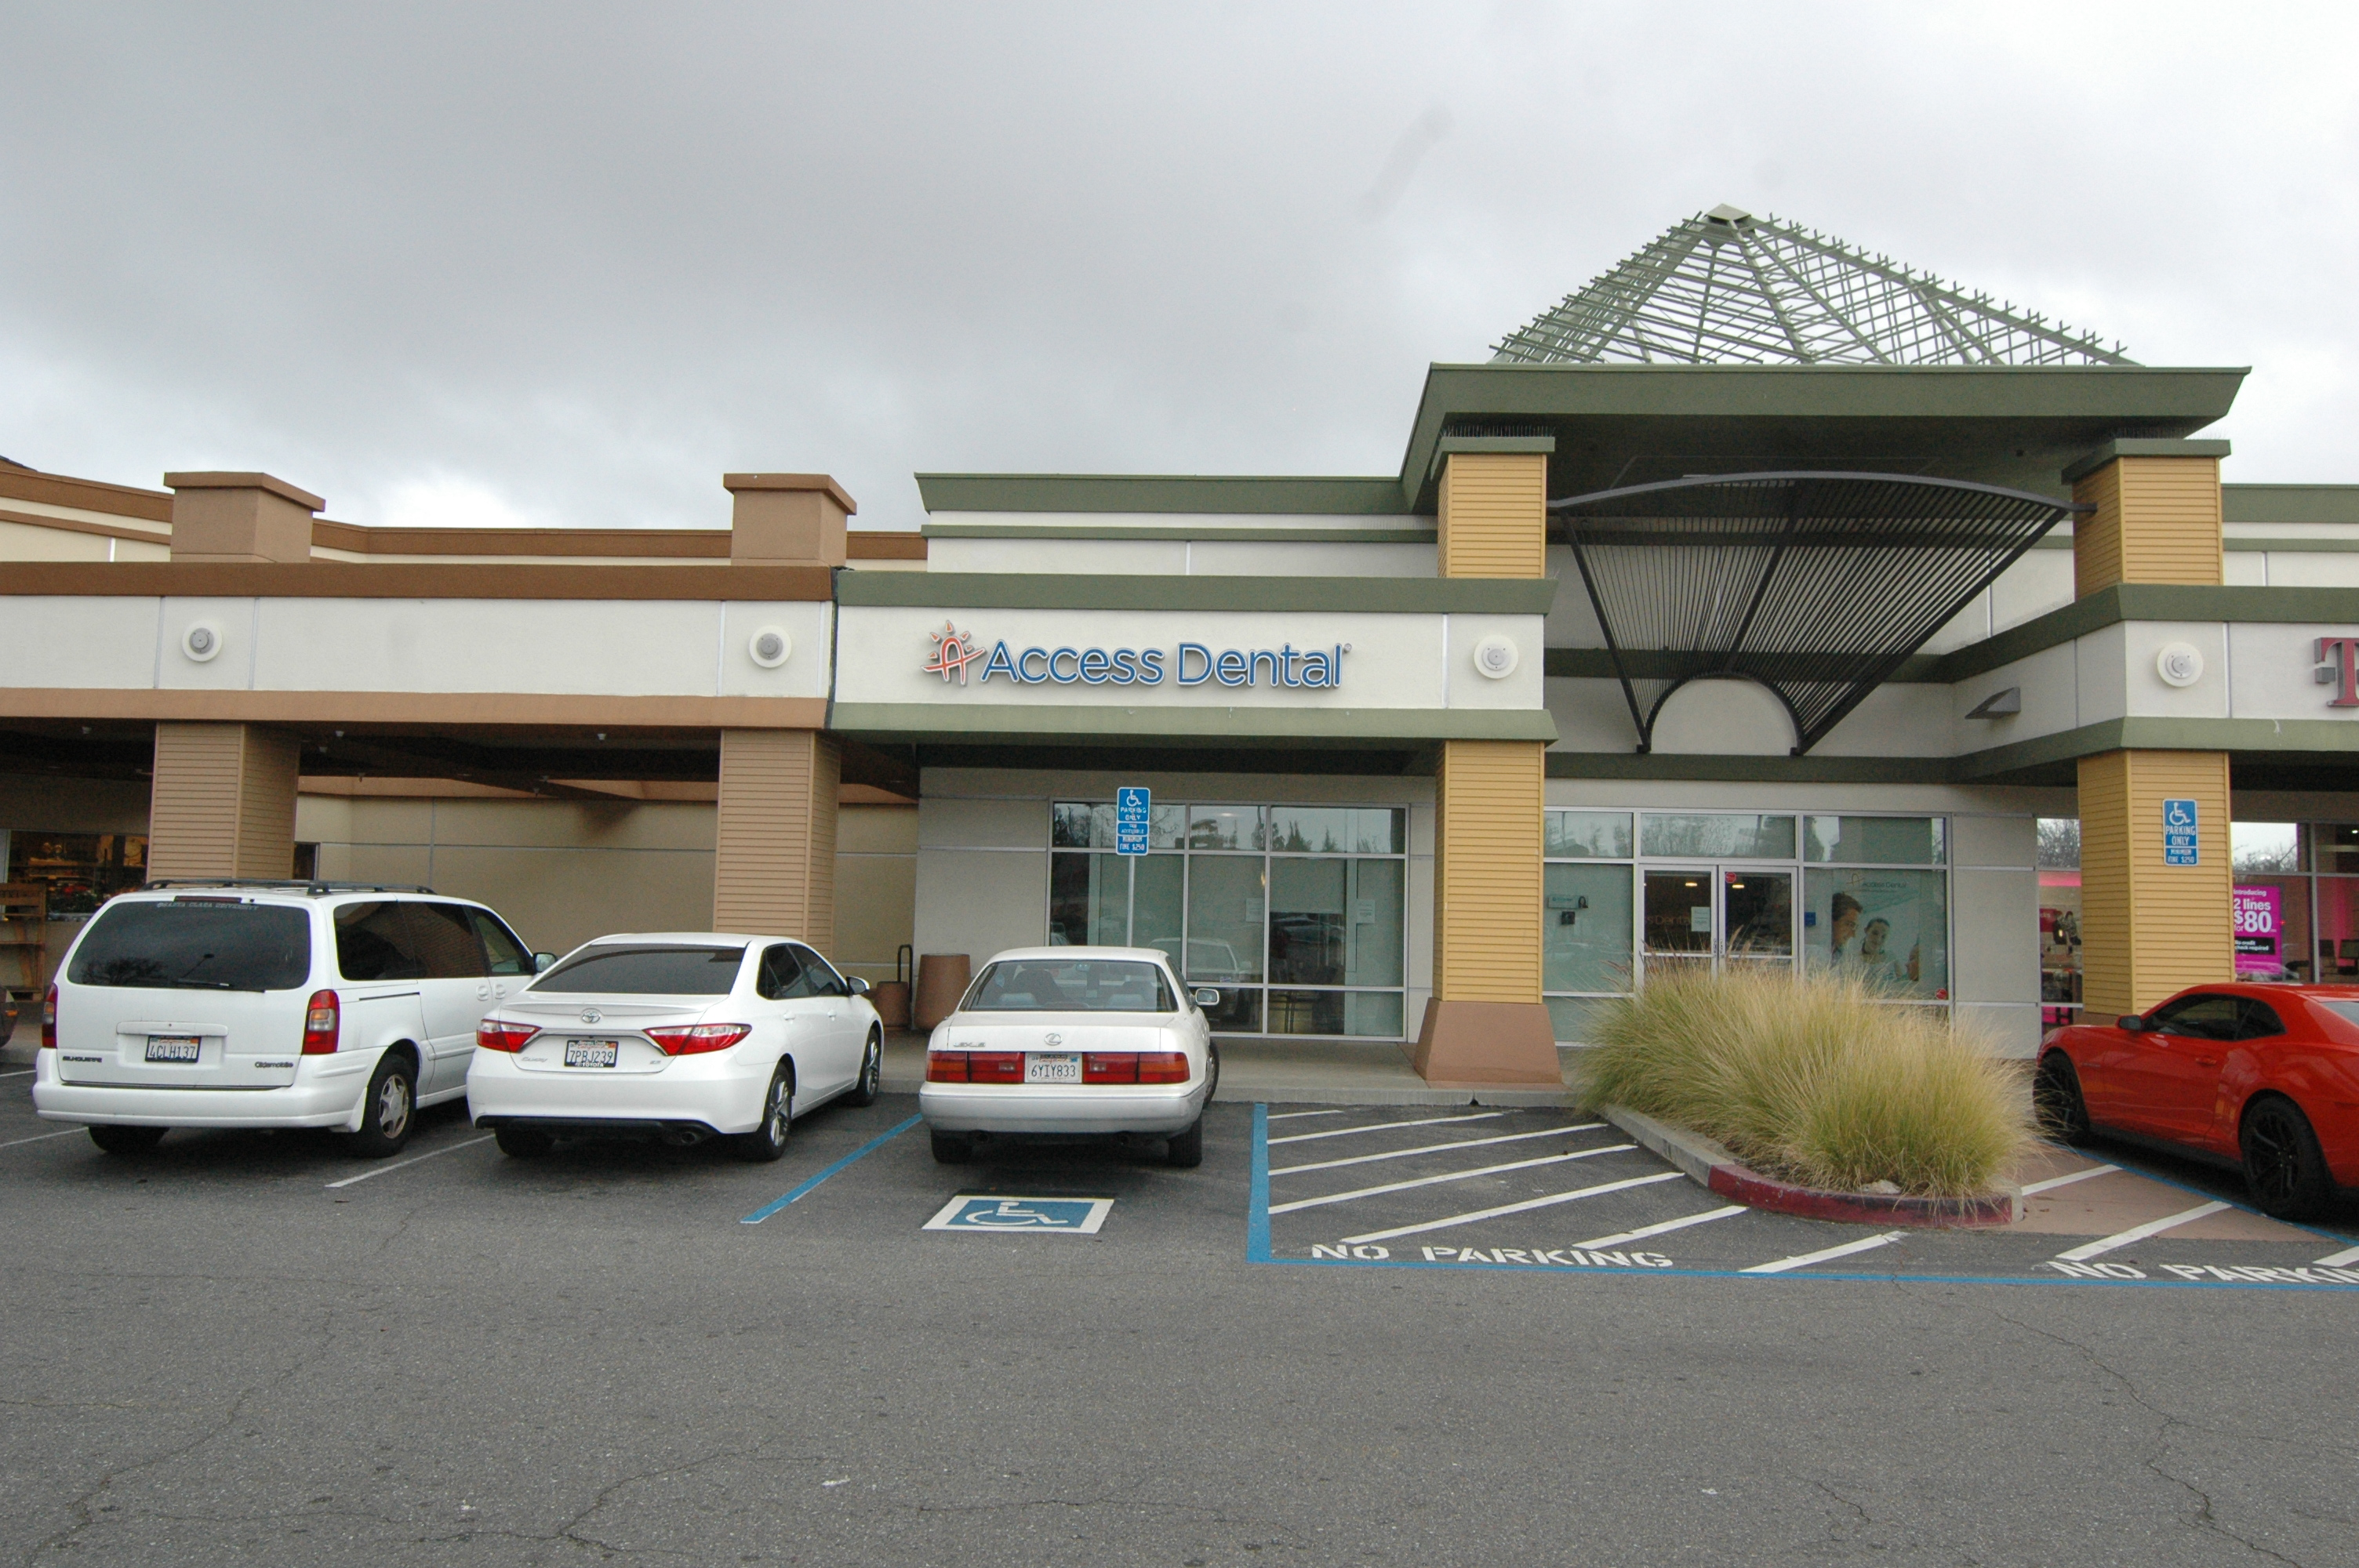 Access Dental in Hacienda Plaza